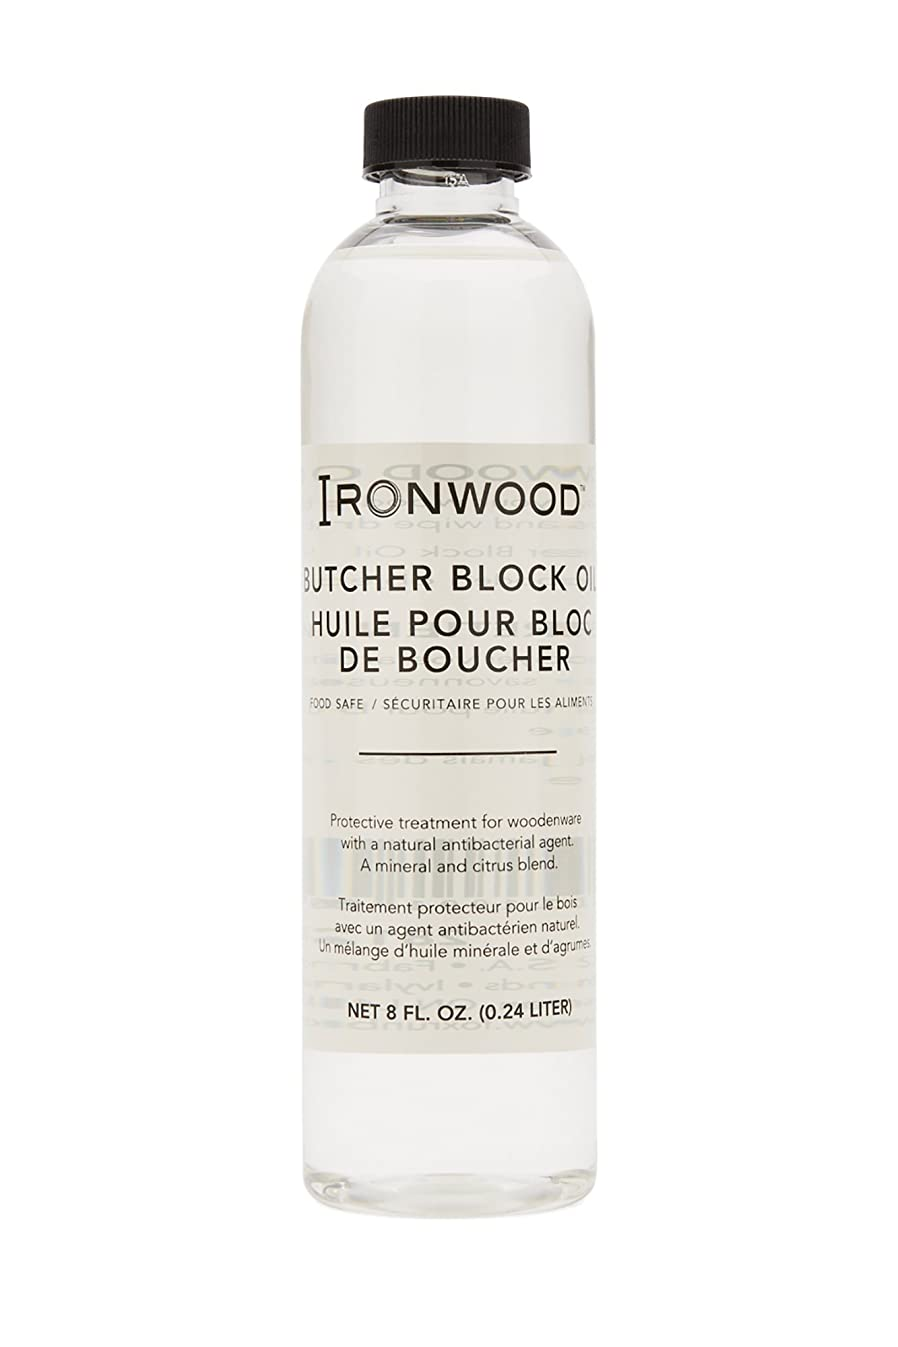 Ironwood Gourmet 28122 Butcher Block Oil, Protective Treatment for Wood, 8-Ounce Bottle